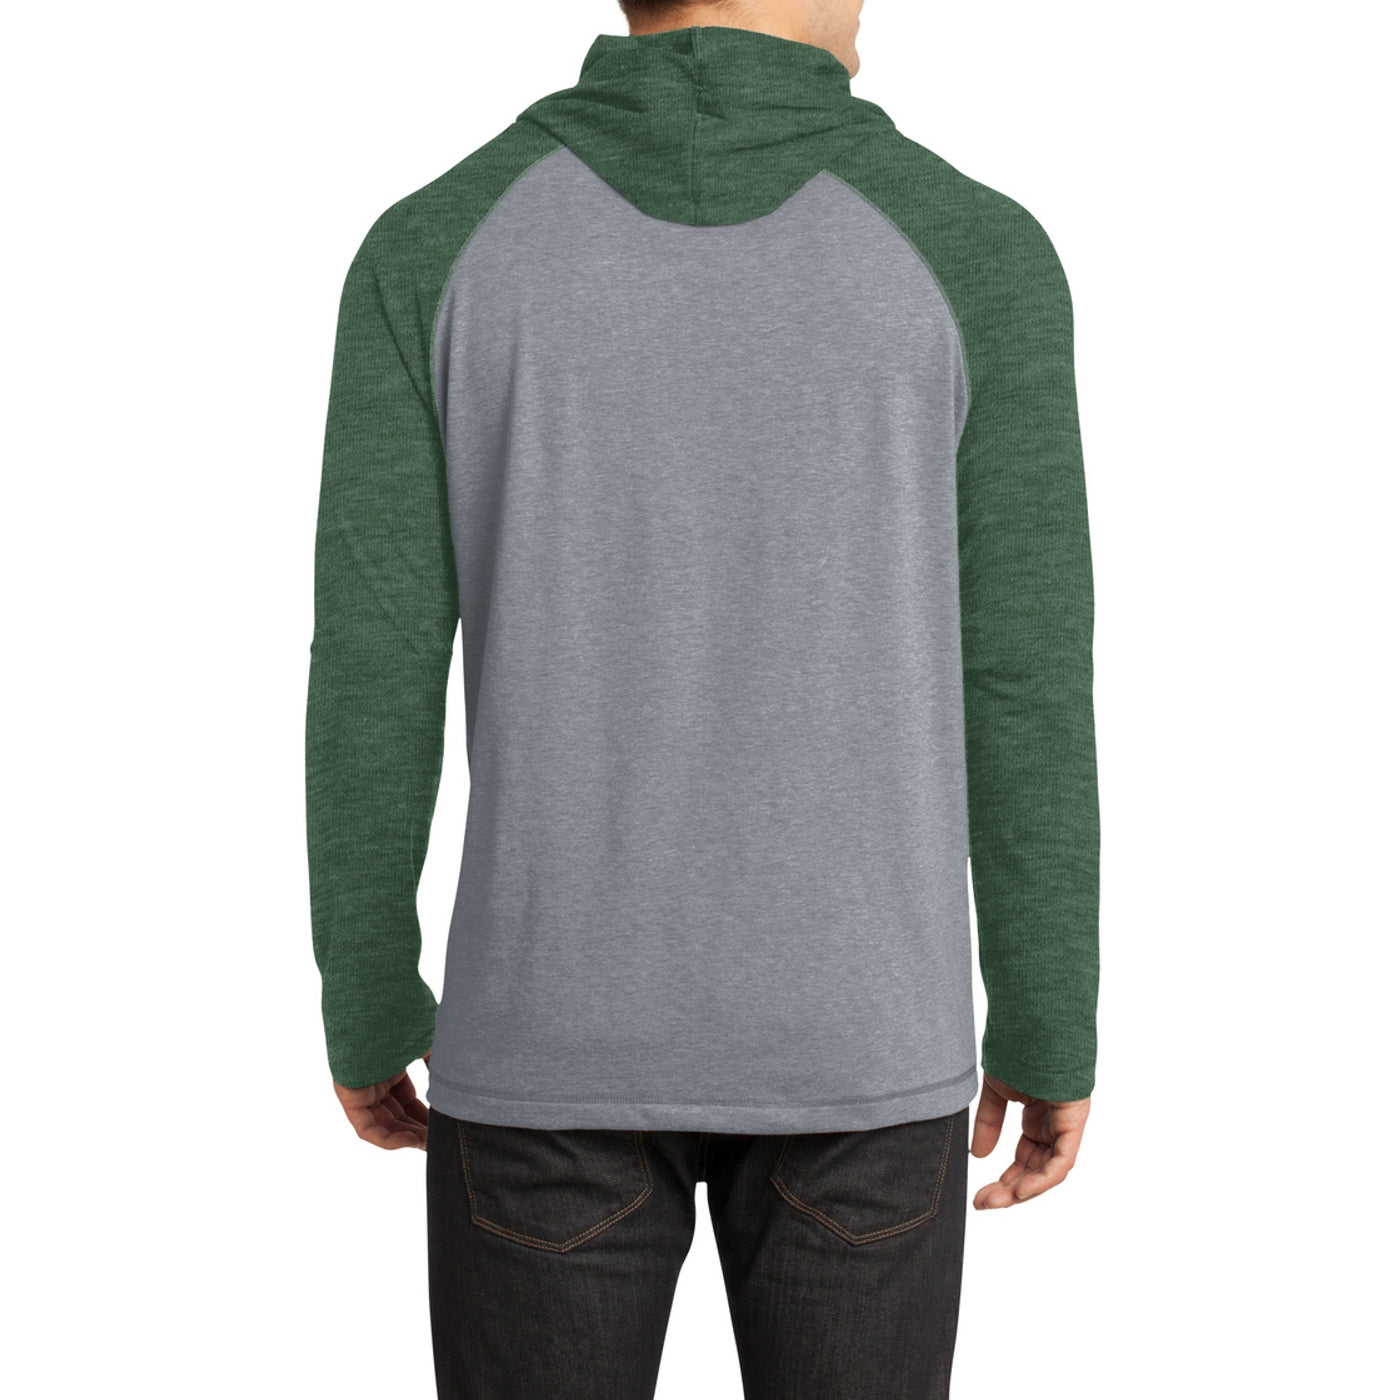 Men's Young 50/50 Raglan Hoodie - Heathered Forest Green/ Heathered Nickel